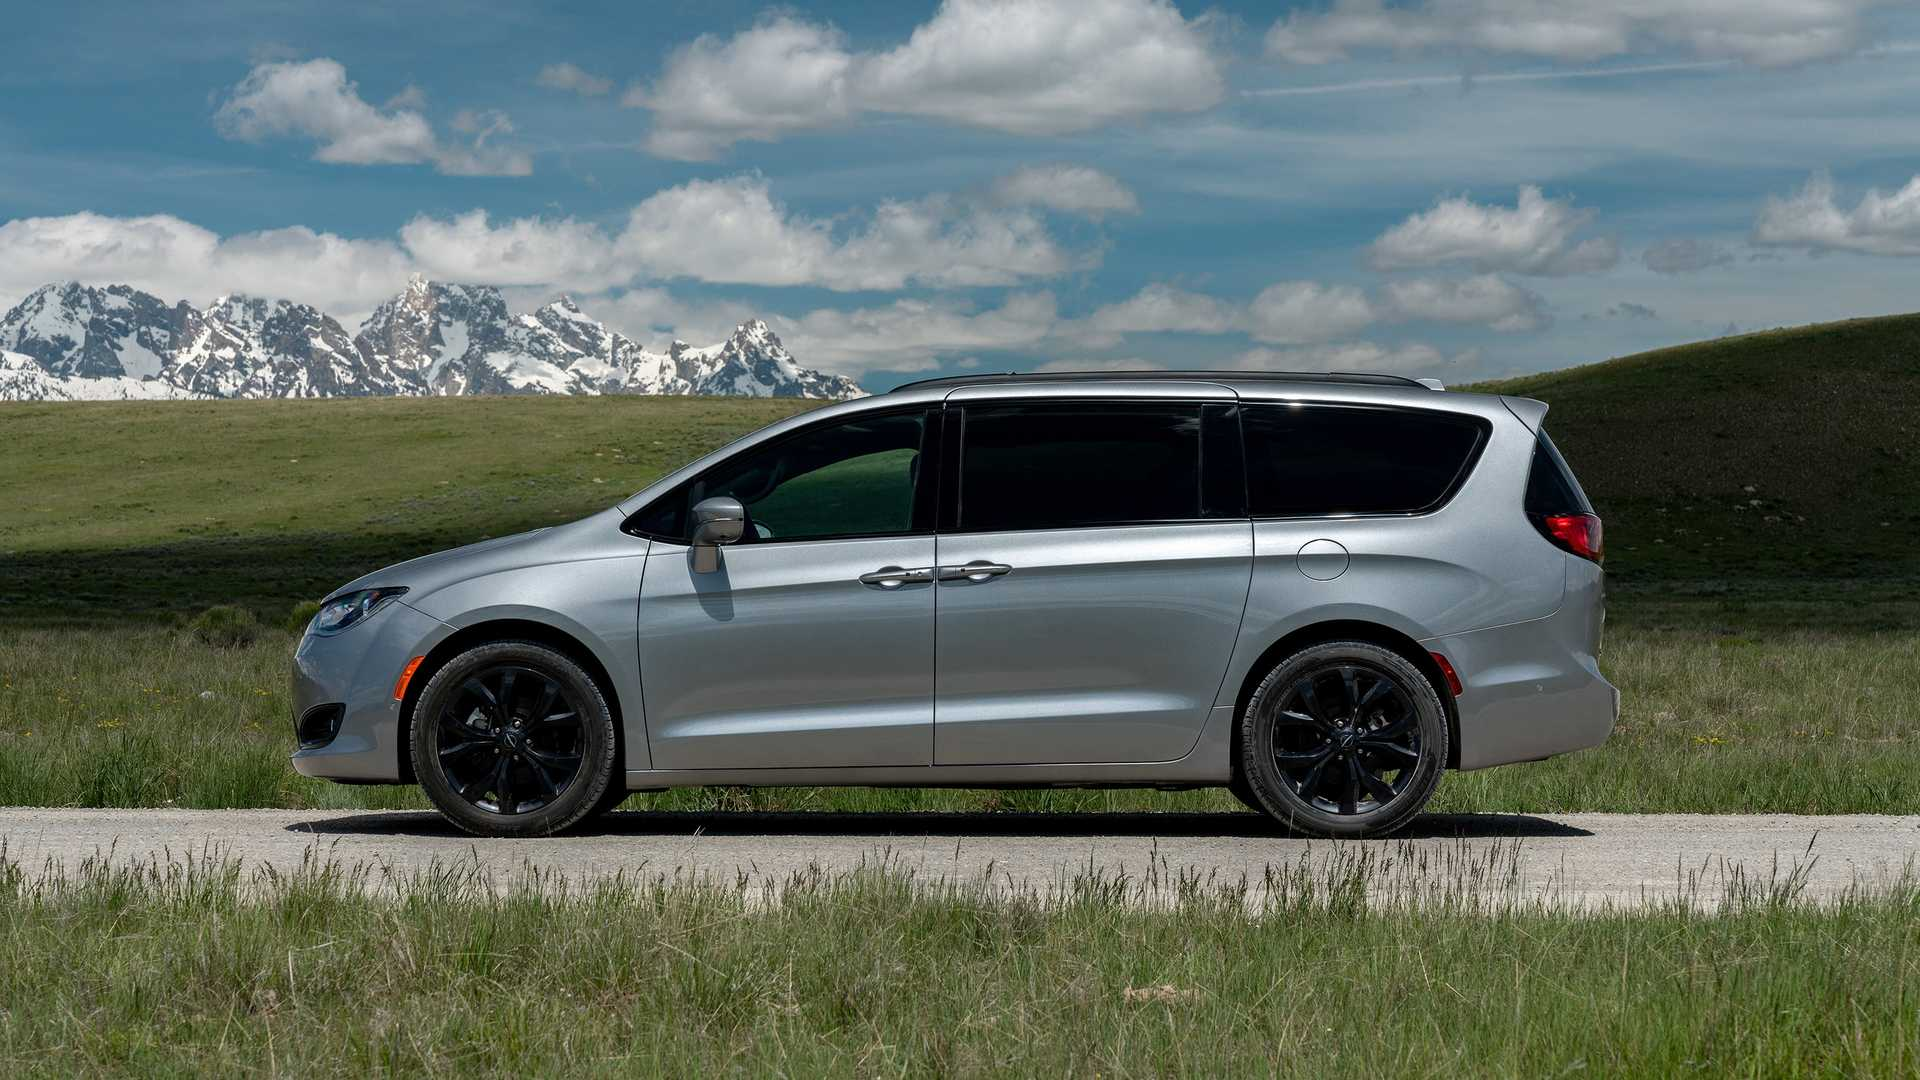 2020_Chrysler_Pacifica_Red_S_Edition_0008